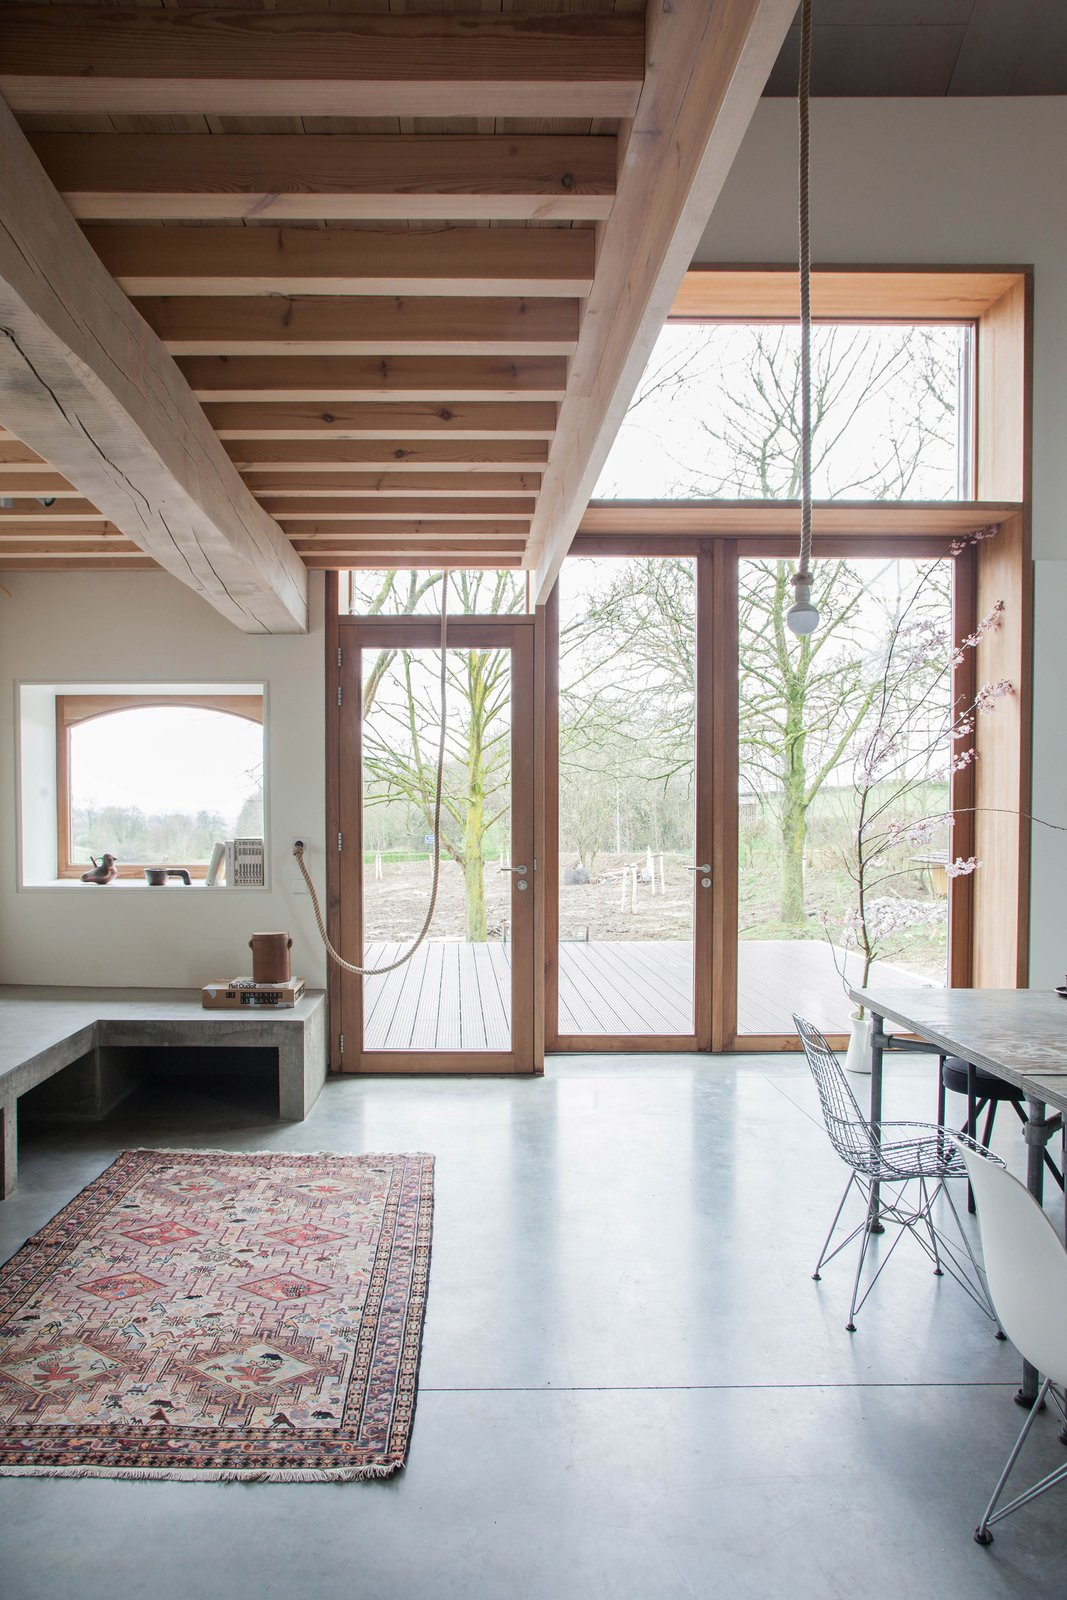 Photo 5 of 7 in Farm Grubbehoeve by Jeanne Dekkers Architecture